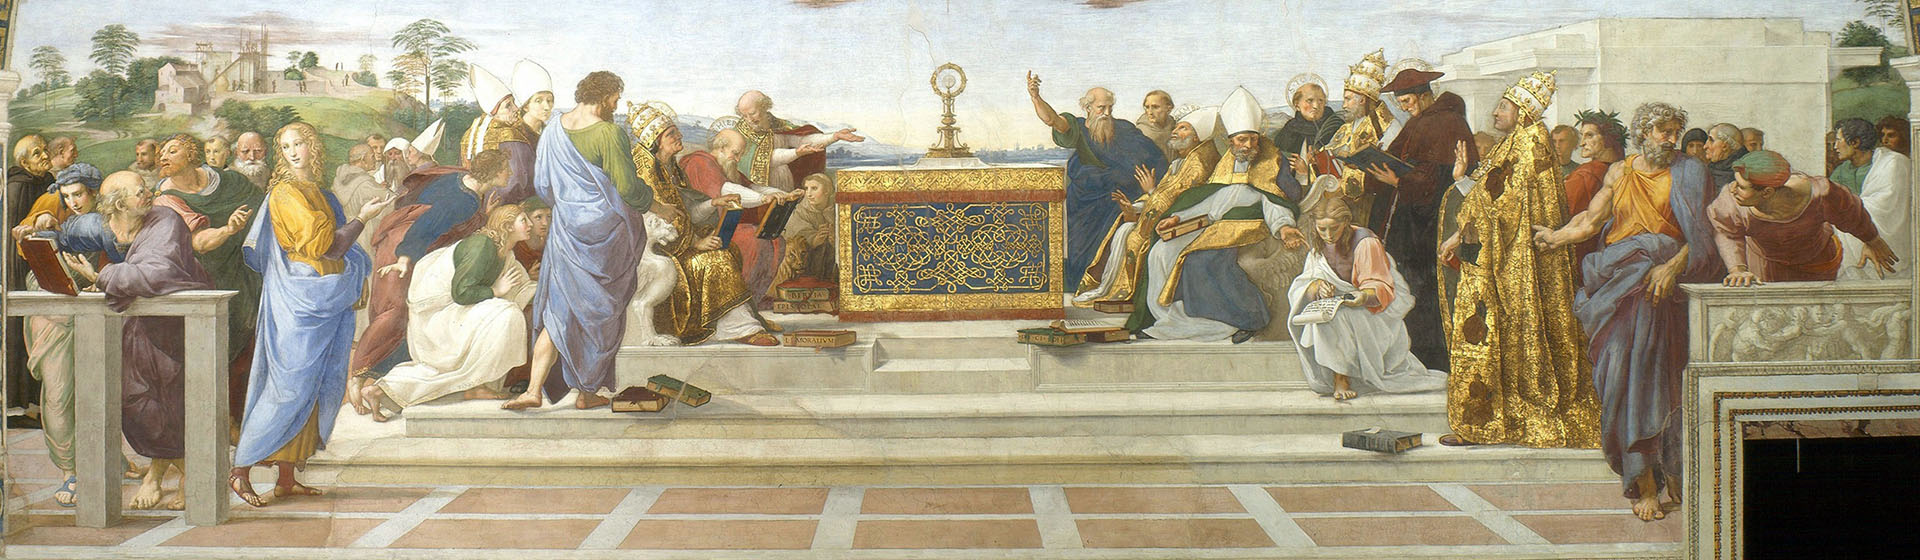 painting entitled Disputation of the Holy Sacrament by Raffaello Sanzio da Urbino